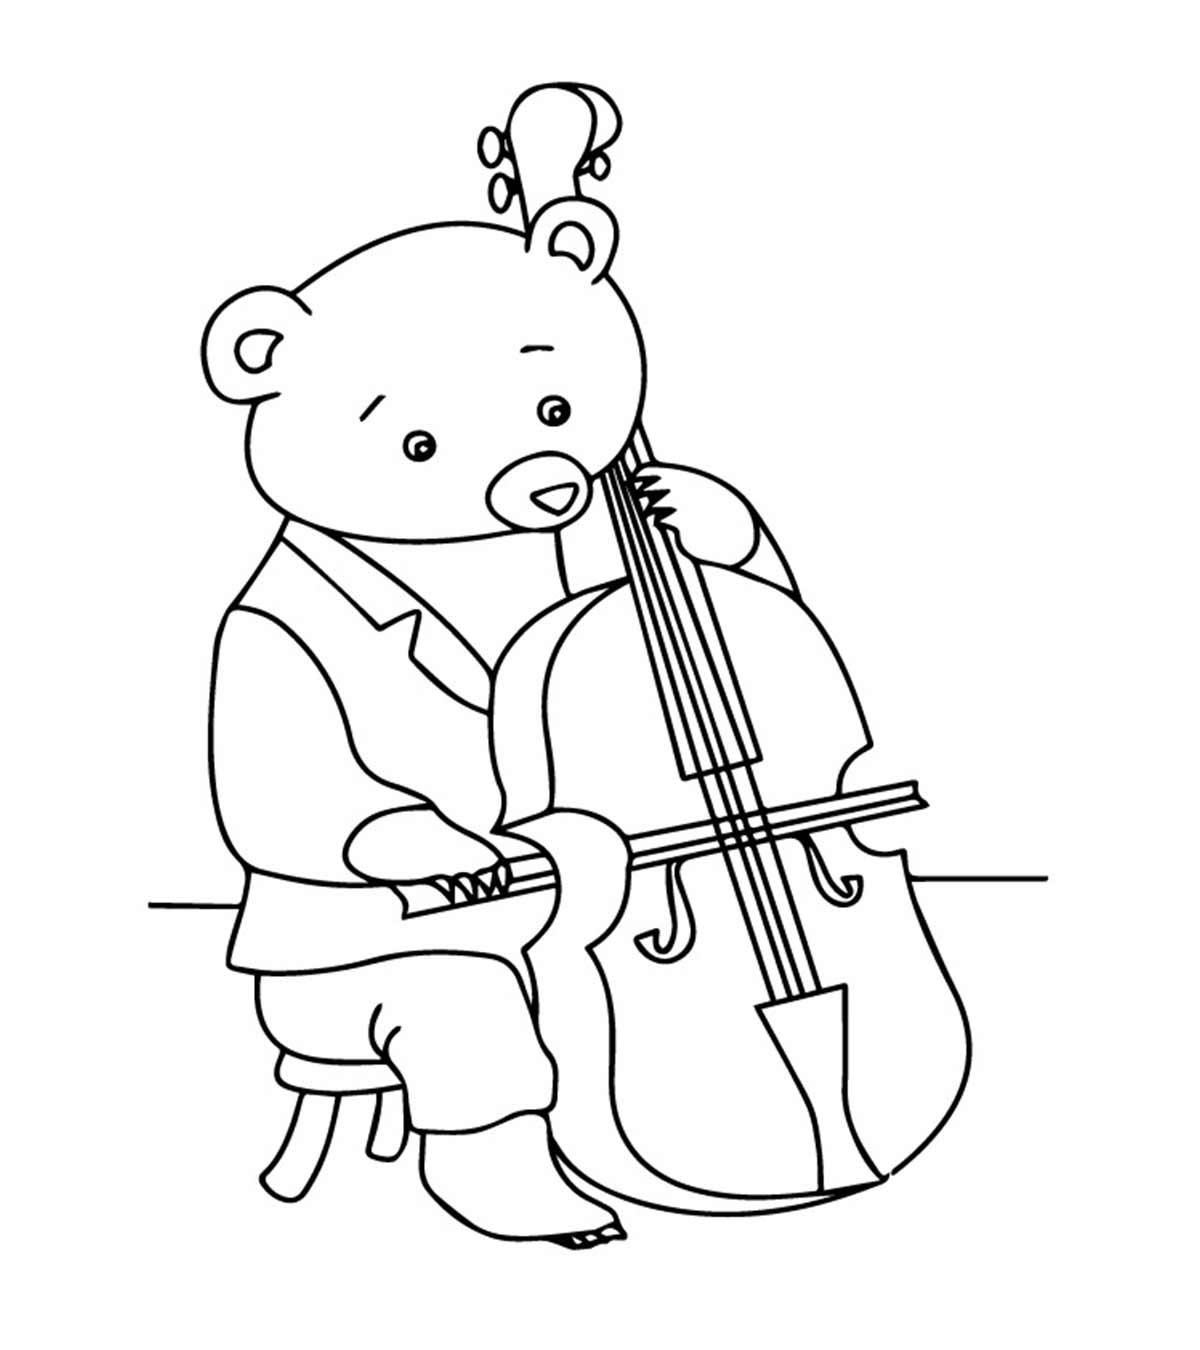 51 Coloring Page Violin Music Coloring Coloring Pages Music Coloring Sheets